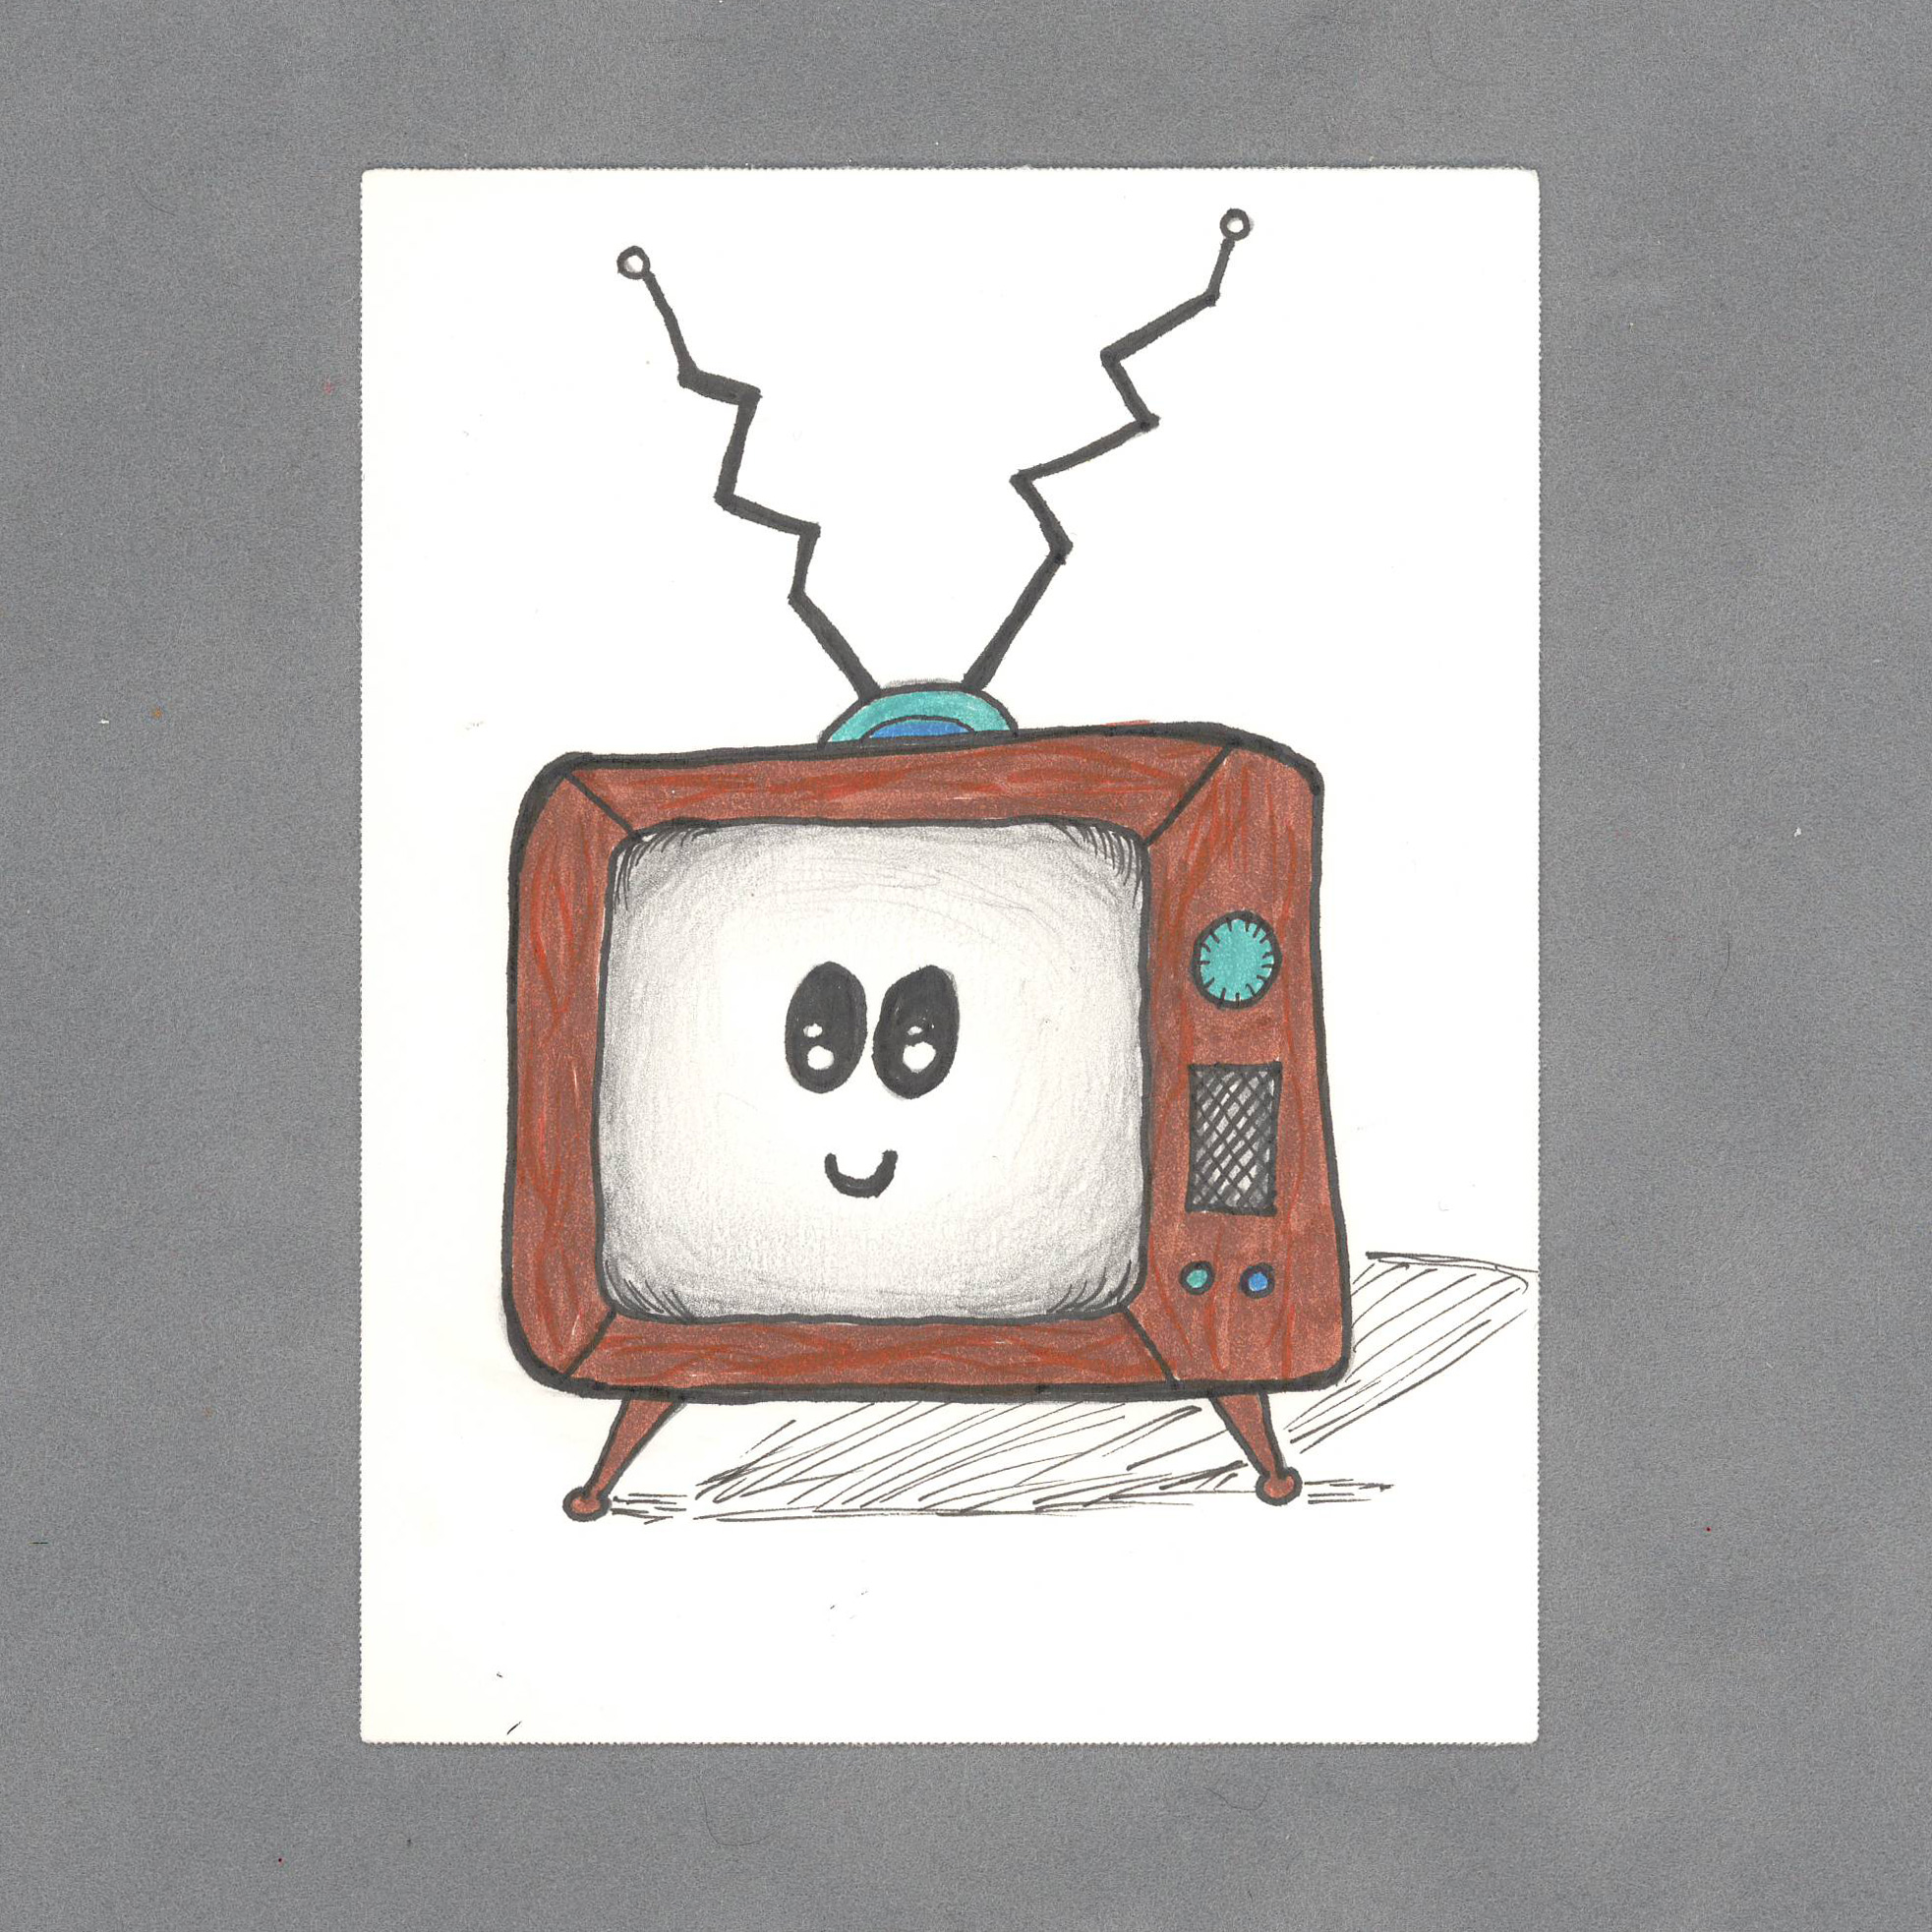 Kawaii Television Art Card by Wilde Designs